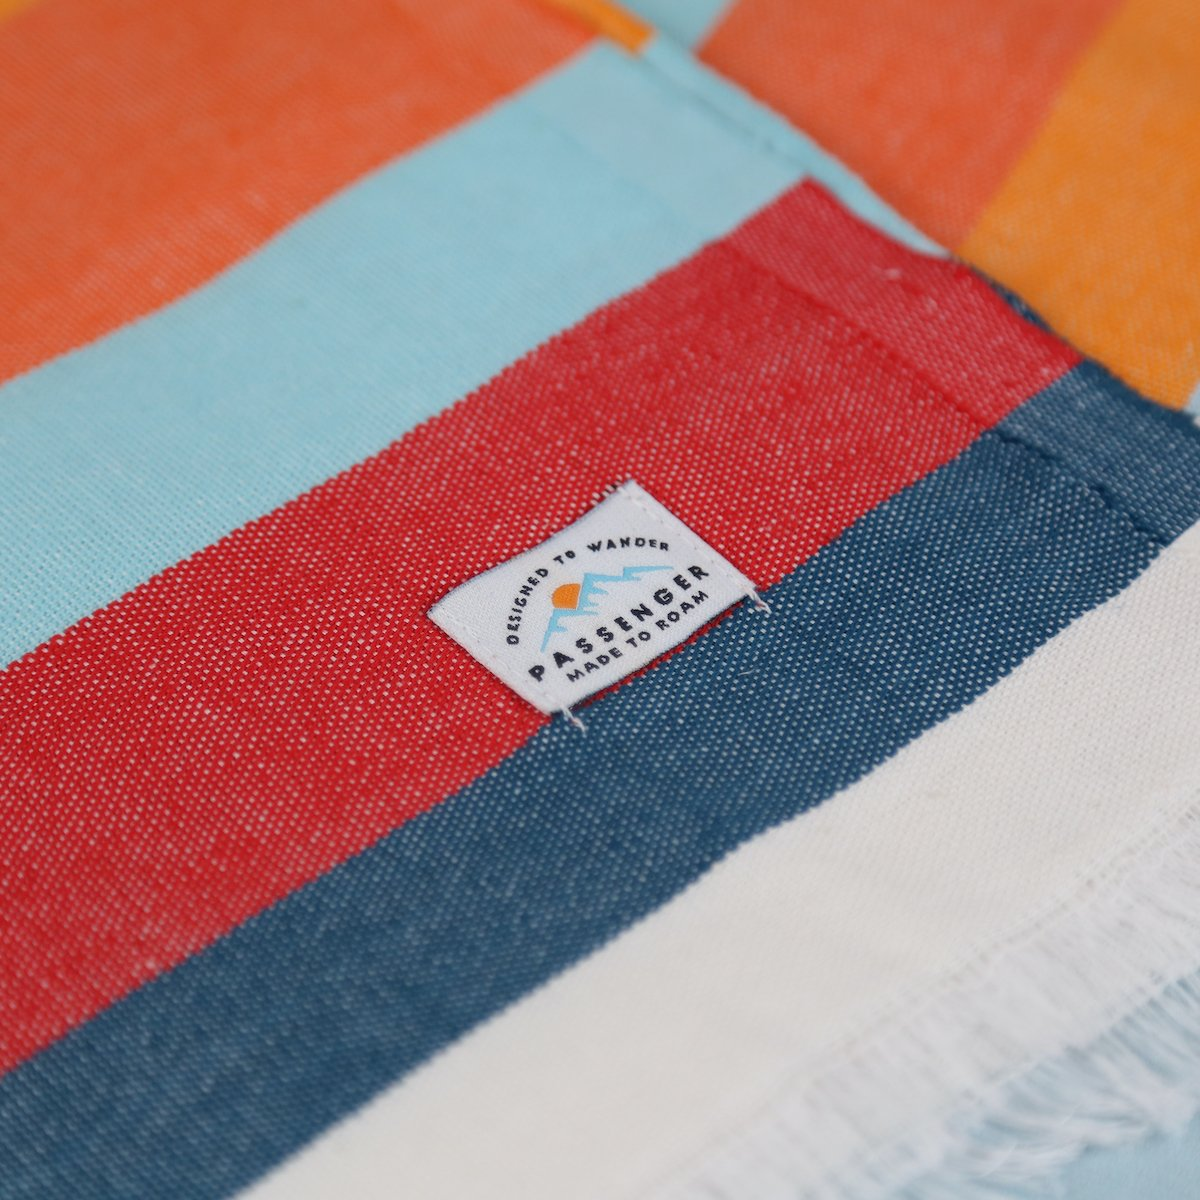 Turkish Towel - Canford Grand Bazaar image 5